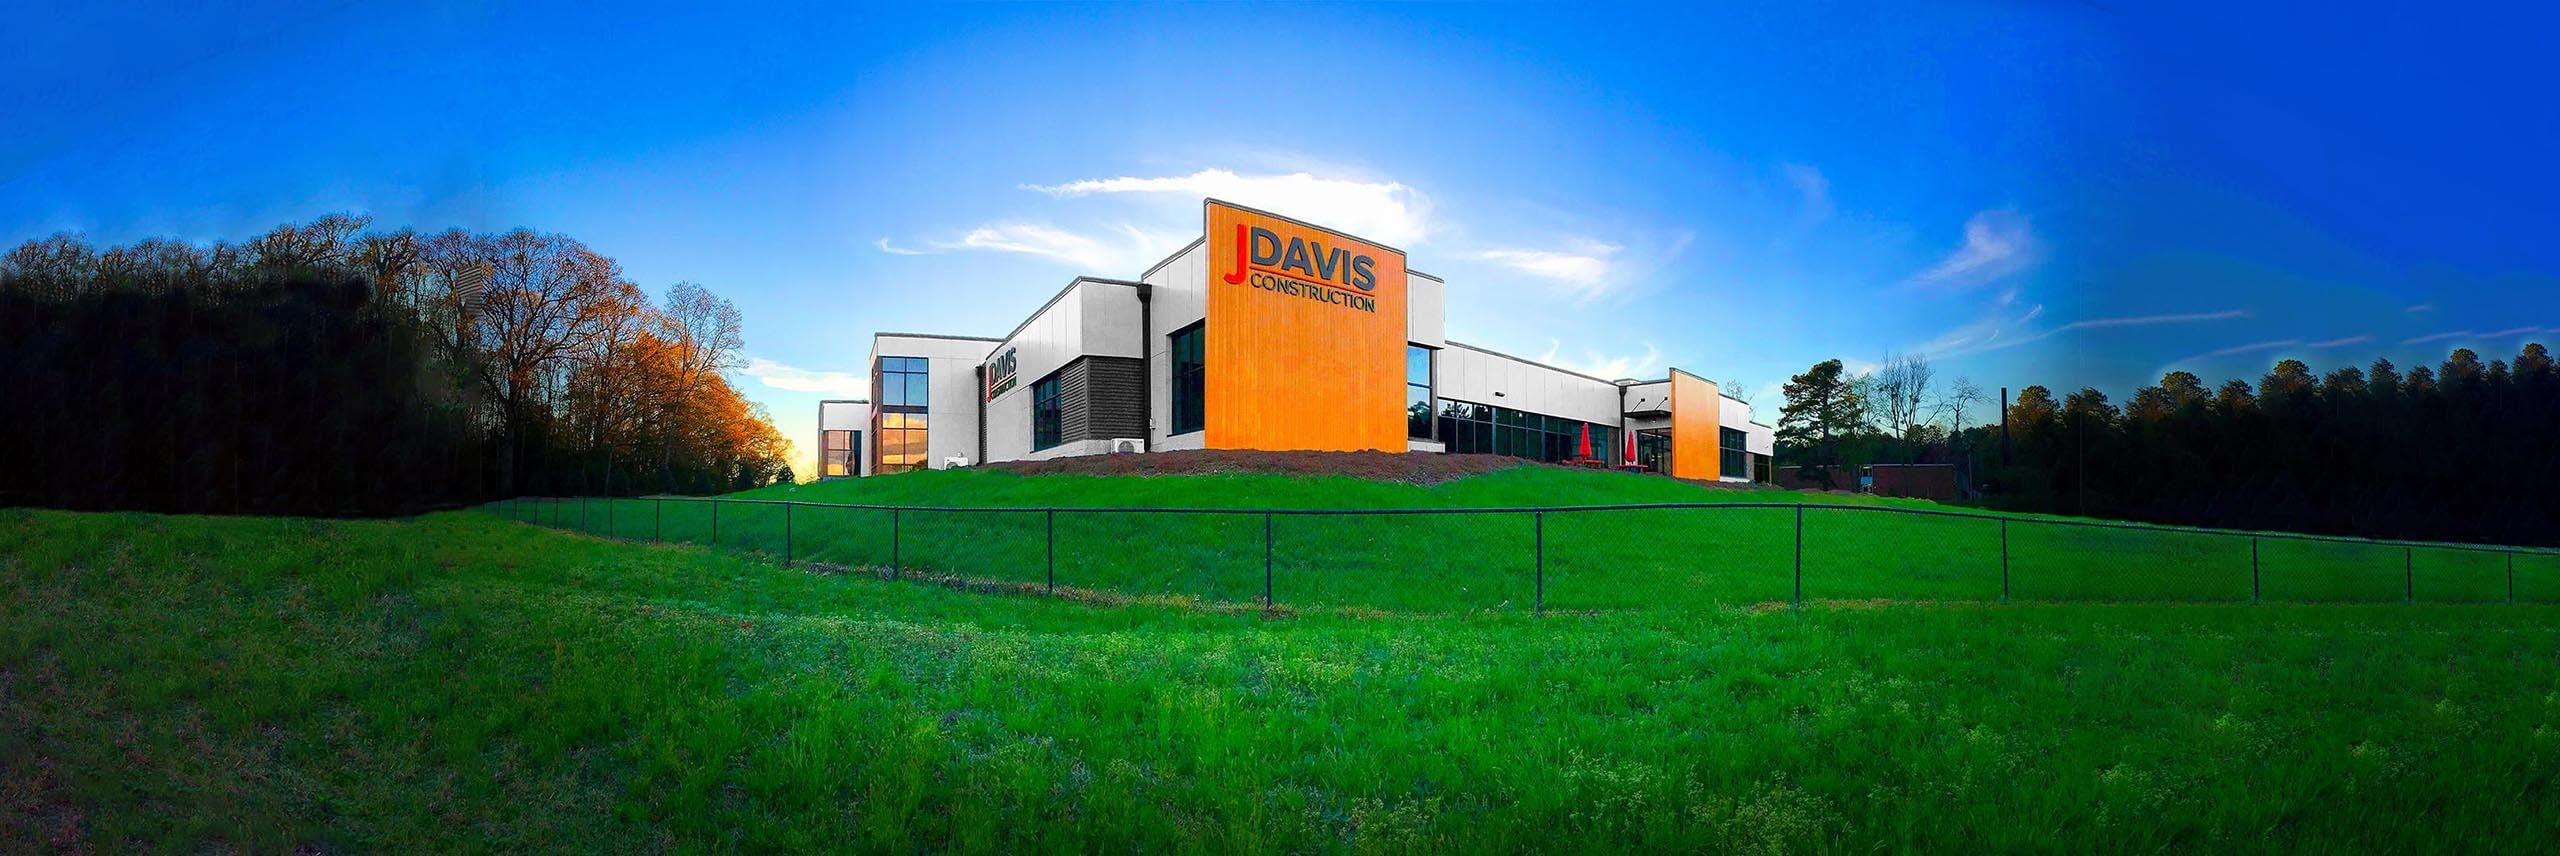 JDavis main office building panoramic view from Interstate 85